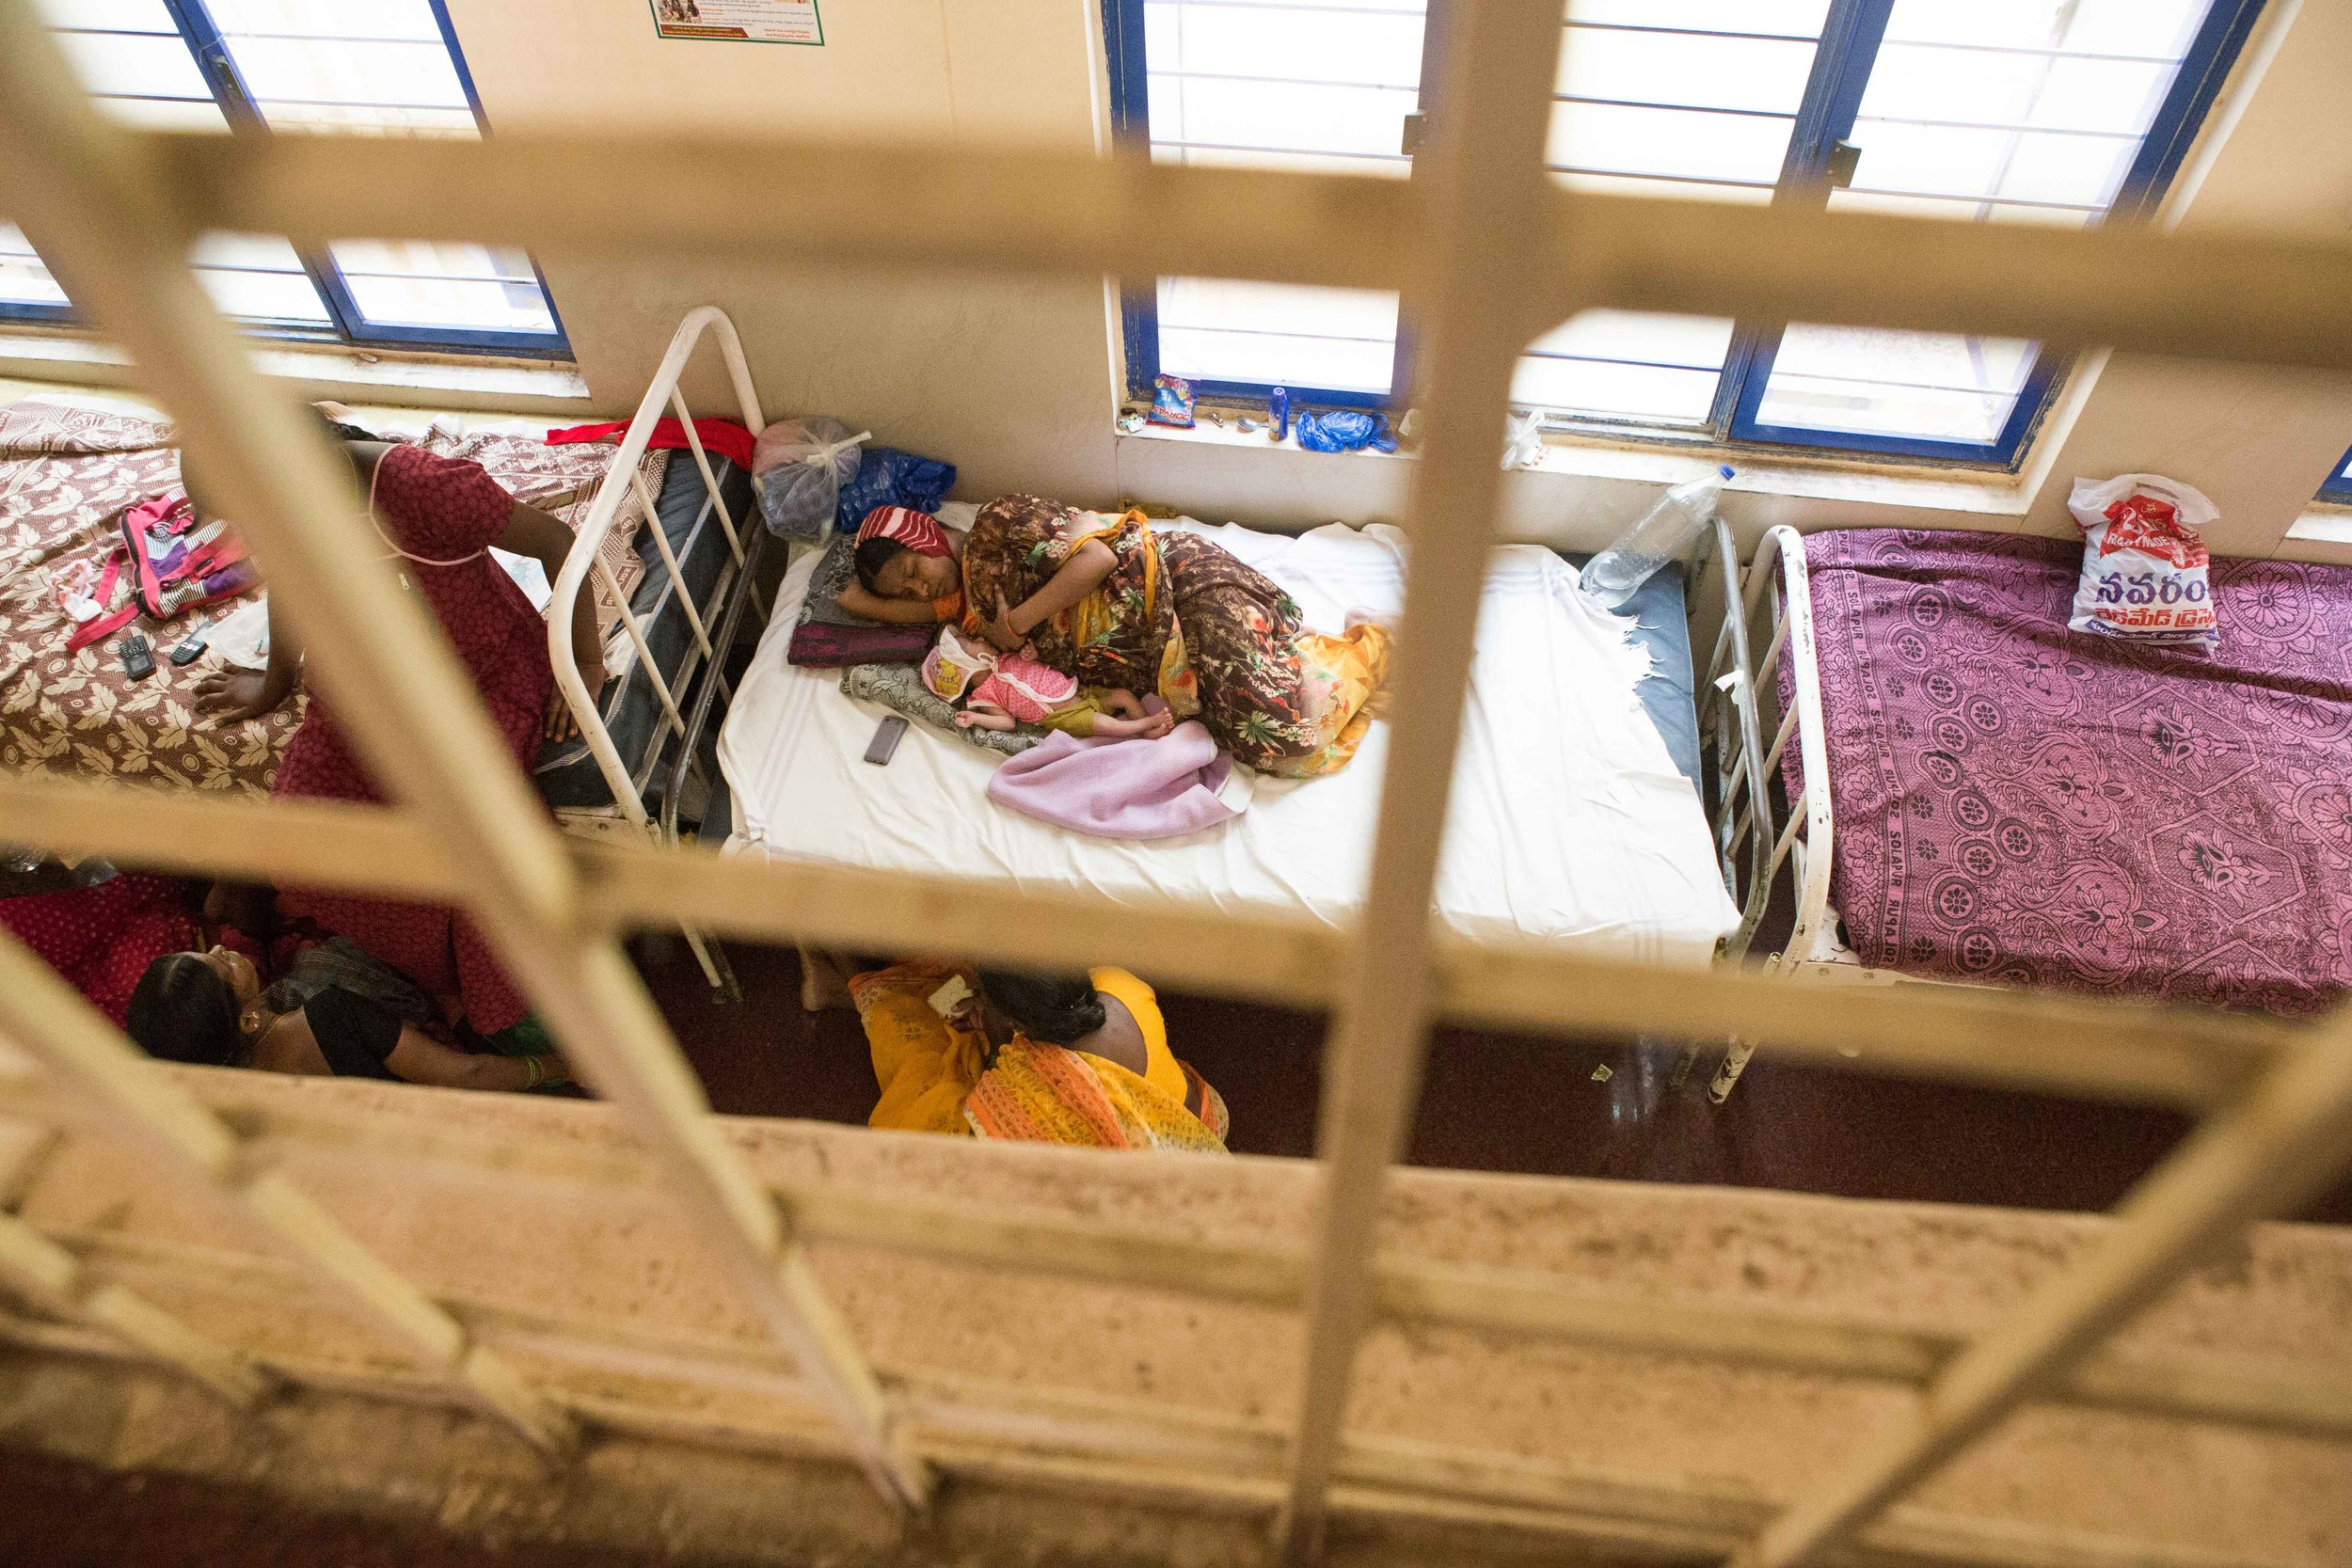 Sometimes there are not enough beds in the district hospital to accommodate the huge demand. The hospital graciously provides a temporary bed to a mother and a new born child in it's corridor. Nalgonda District Hospital, Telangana